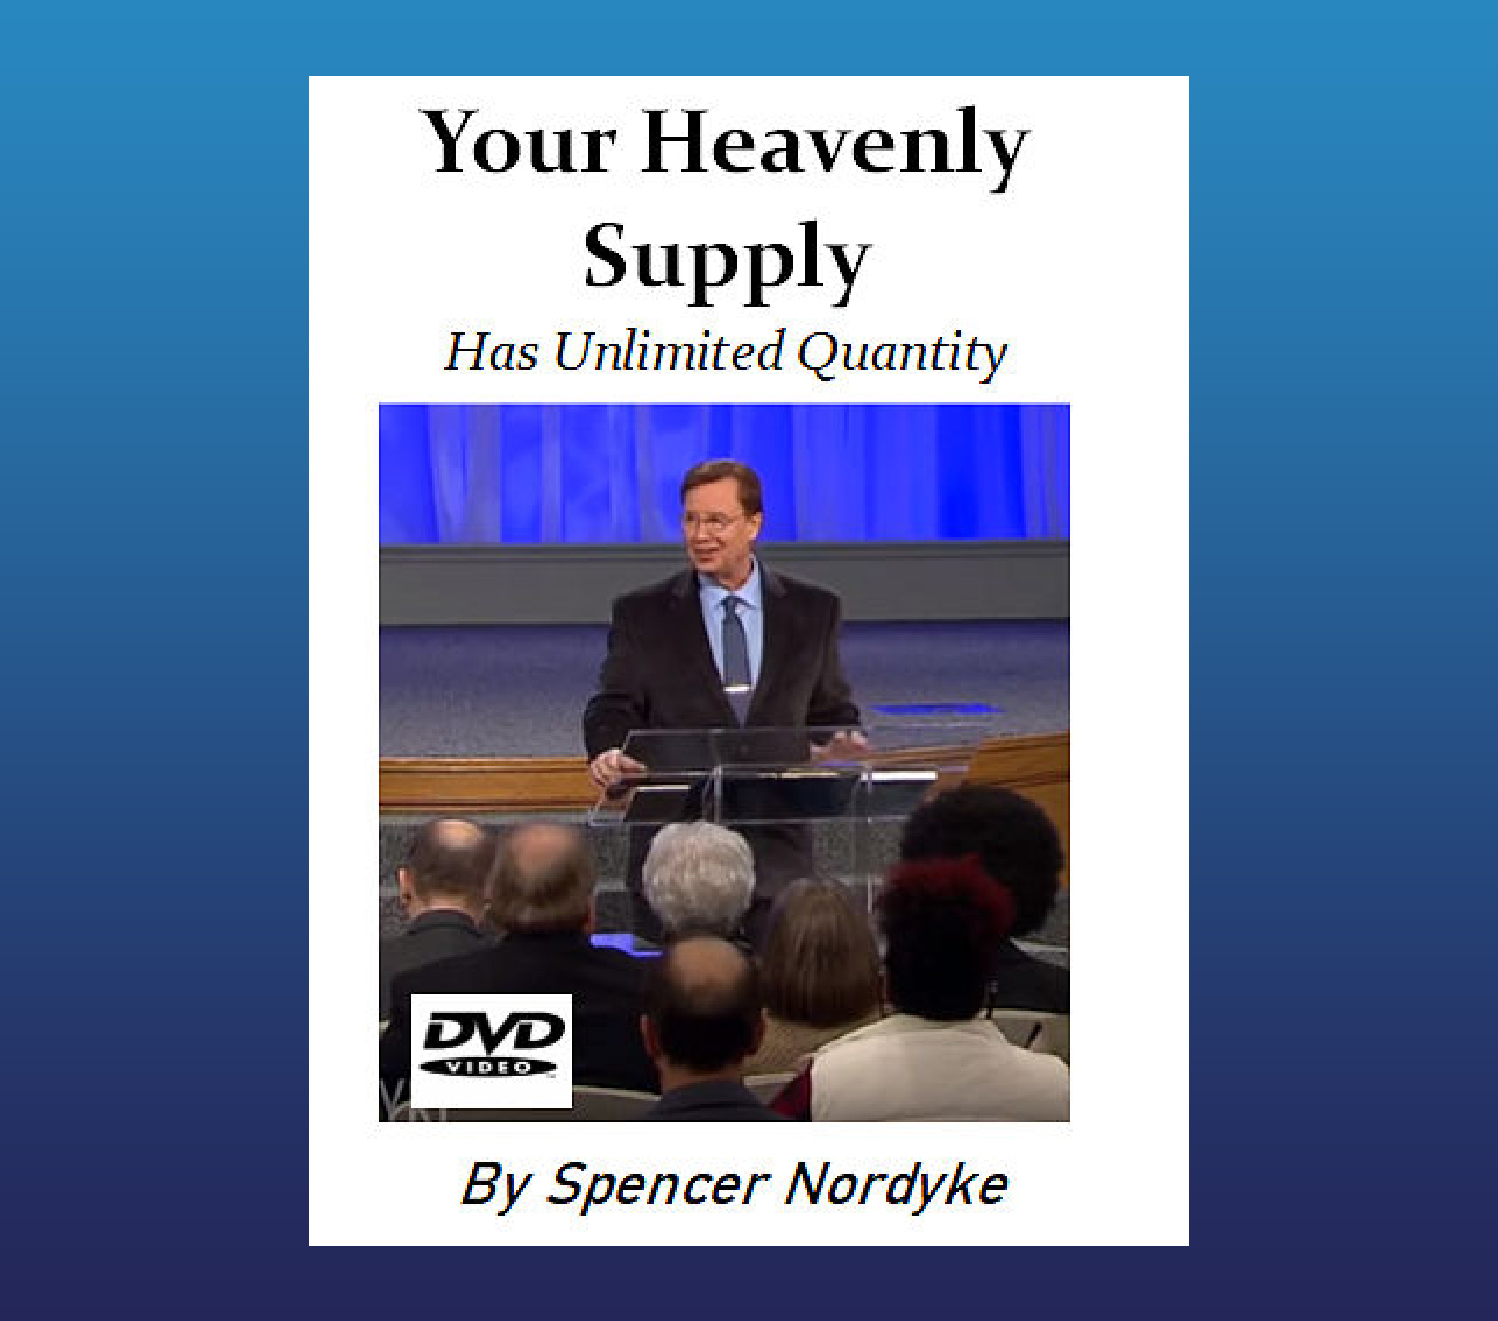 Your Heavenly Supply DVD